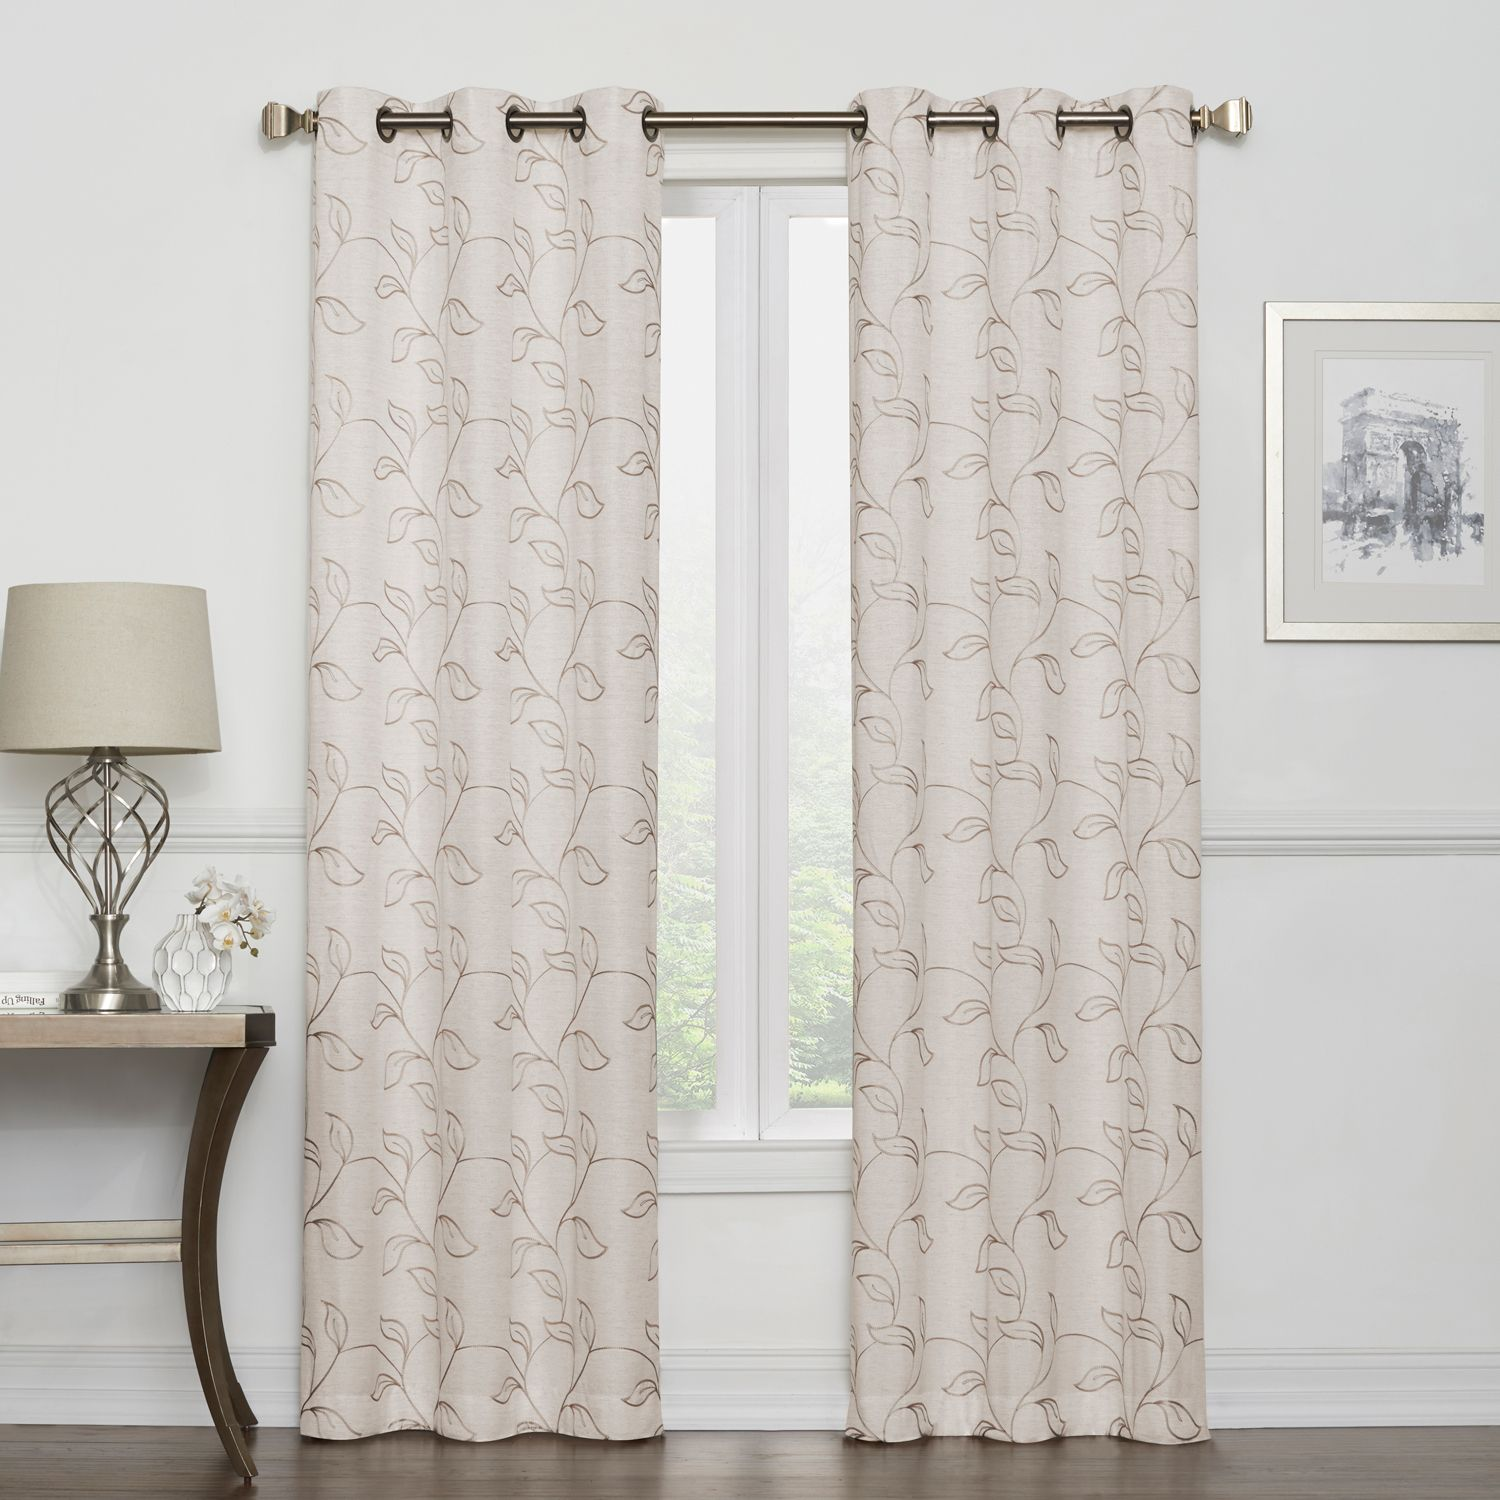 Regent Court 2 Pack Leaf Embroidery Window Curtains